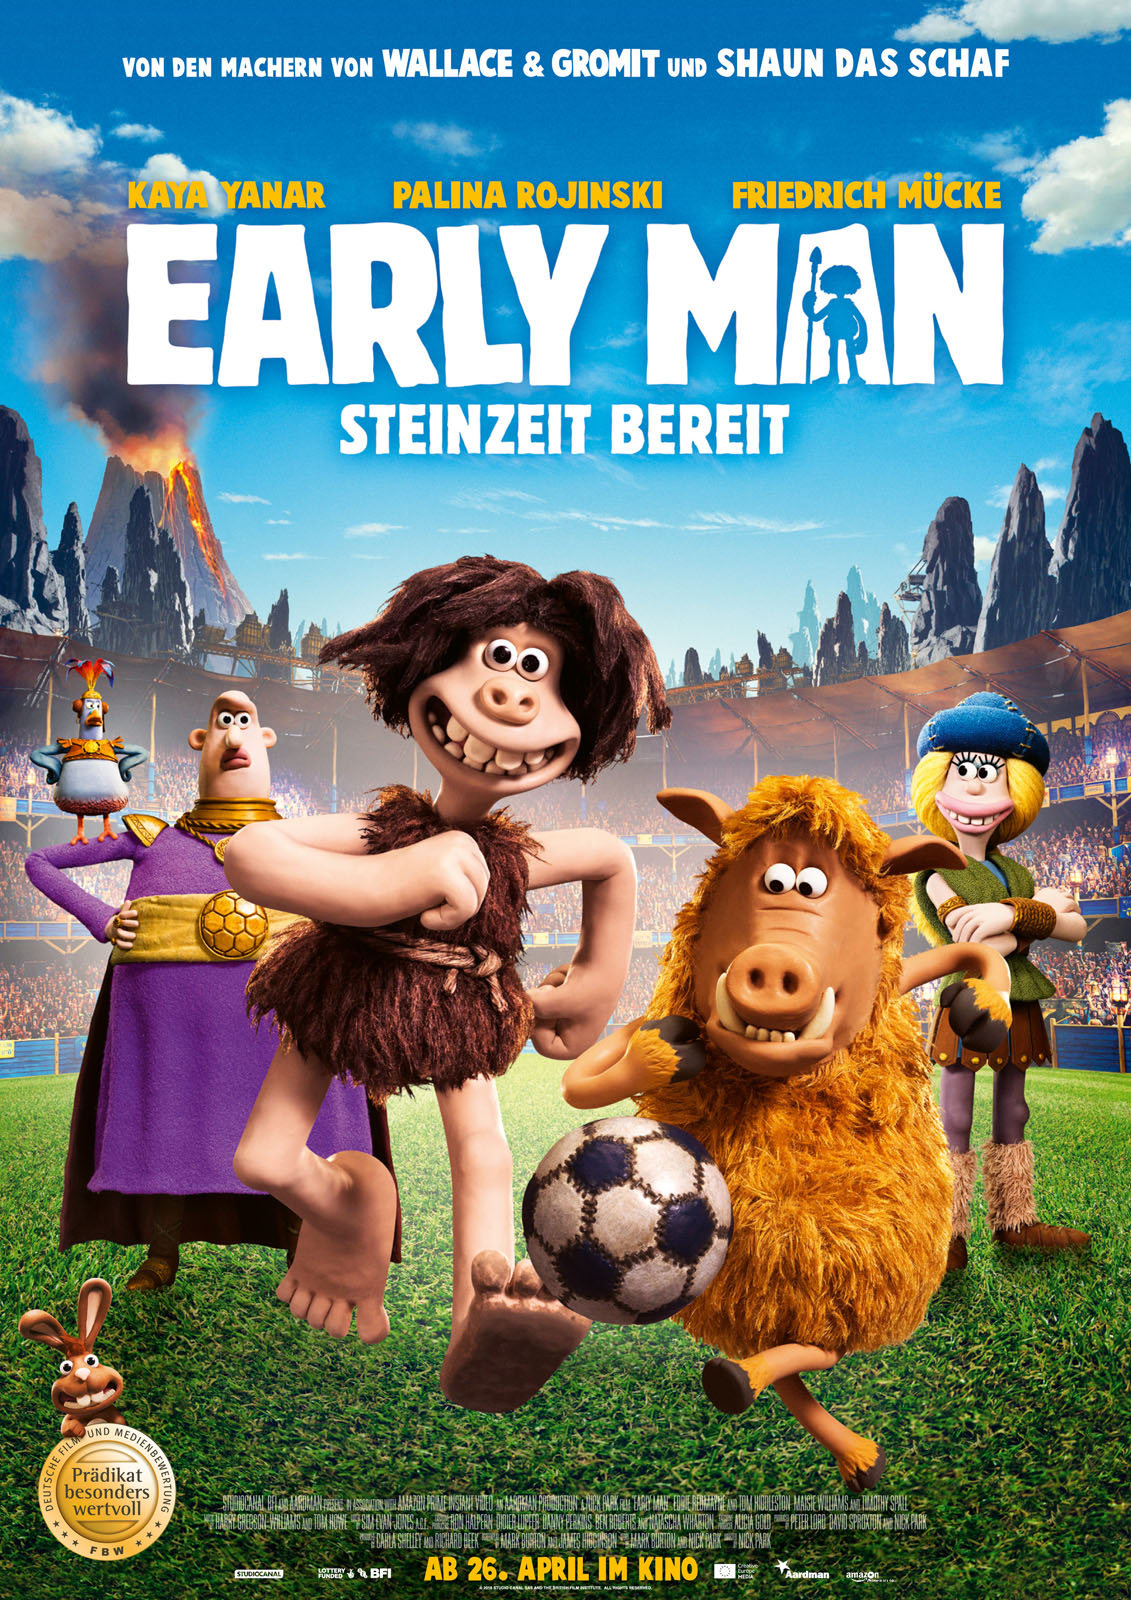 Wer streamt Early Man - Steinzeit bereit / Early Man? openload kkiste kinox